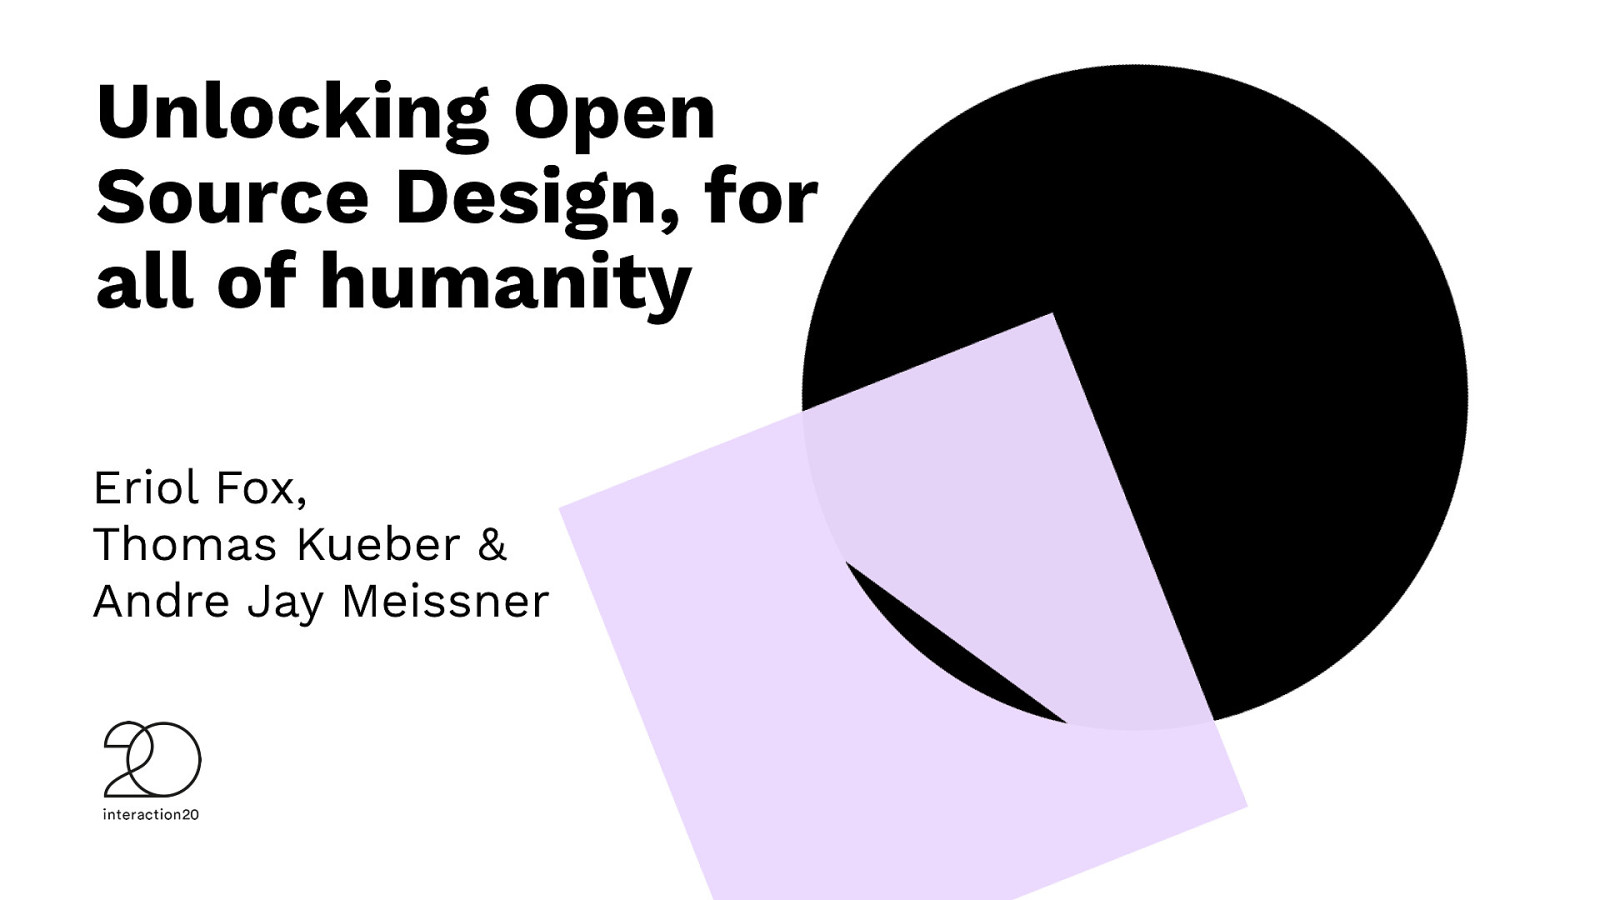 Unlocking Open Source Design, for all of humanity